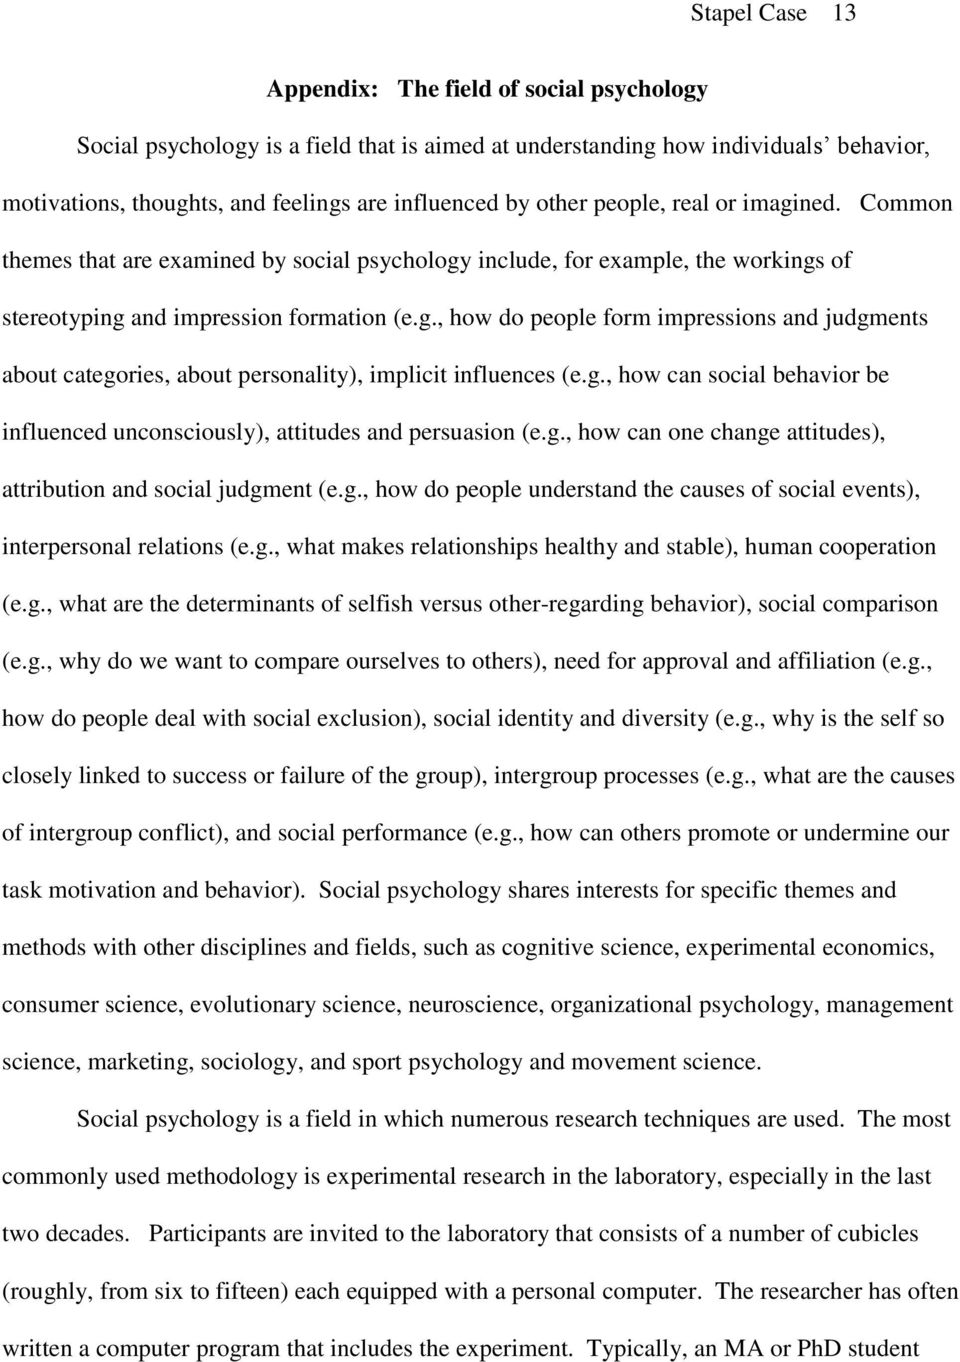 g., how can social behavior be influenced unconsciously), attitudes and persuasion (e.g., how can one change attitudes), attribution and social judgment (e.g., how do people understand the causes of social events), interpersonal relations (e.